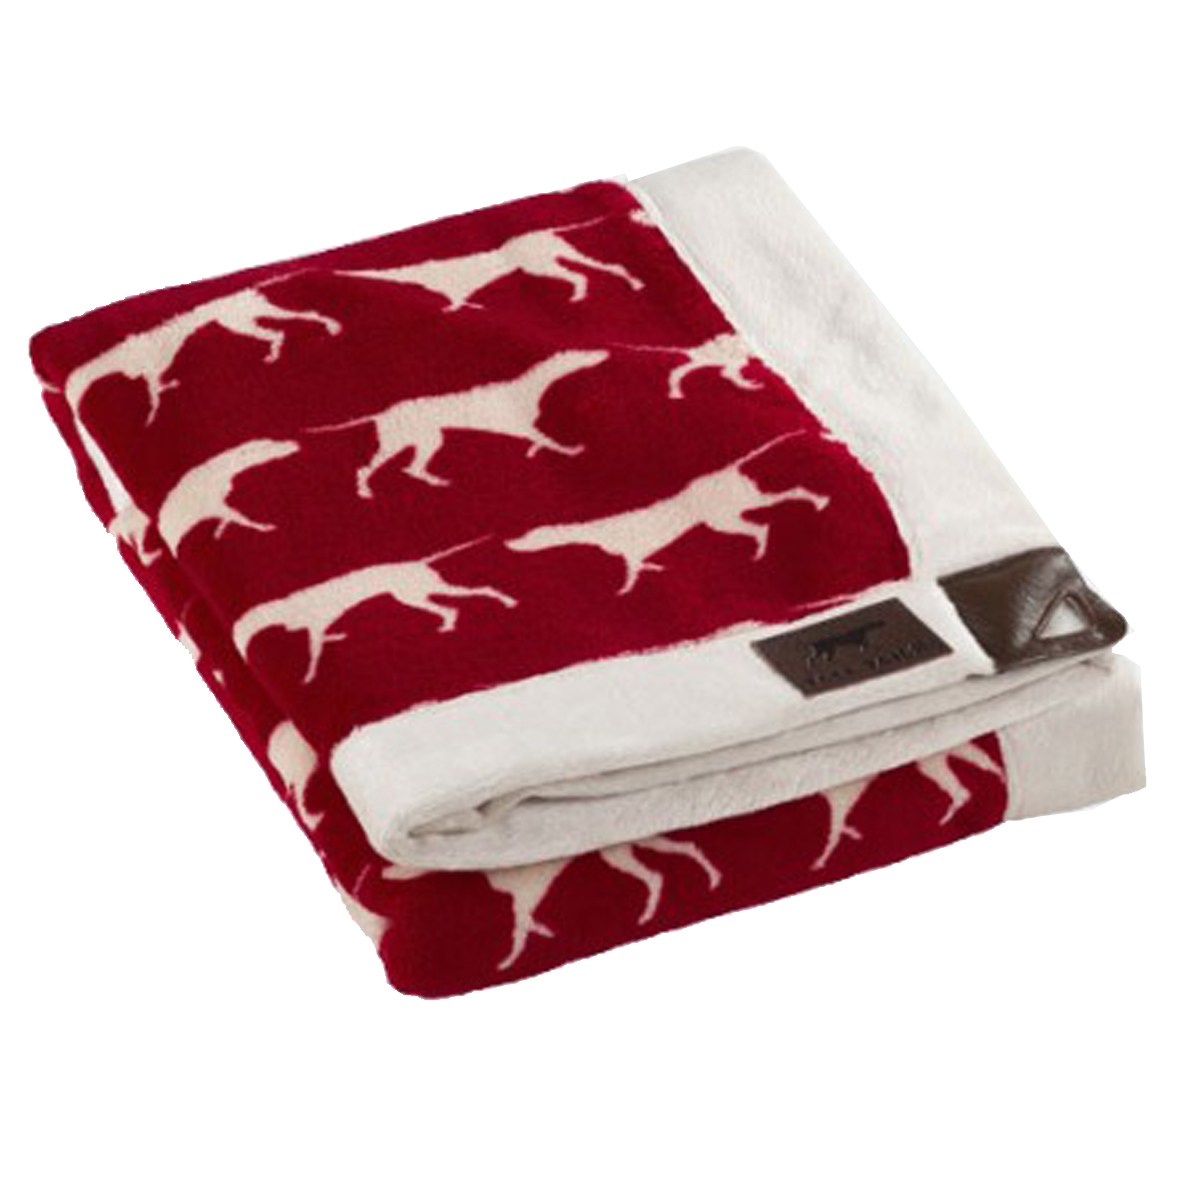 Dog Bed Fleece Fabric